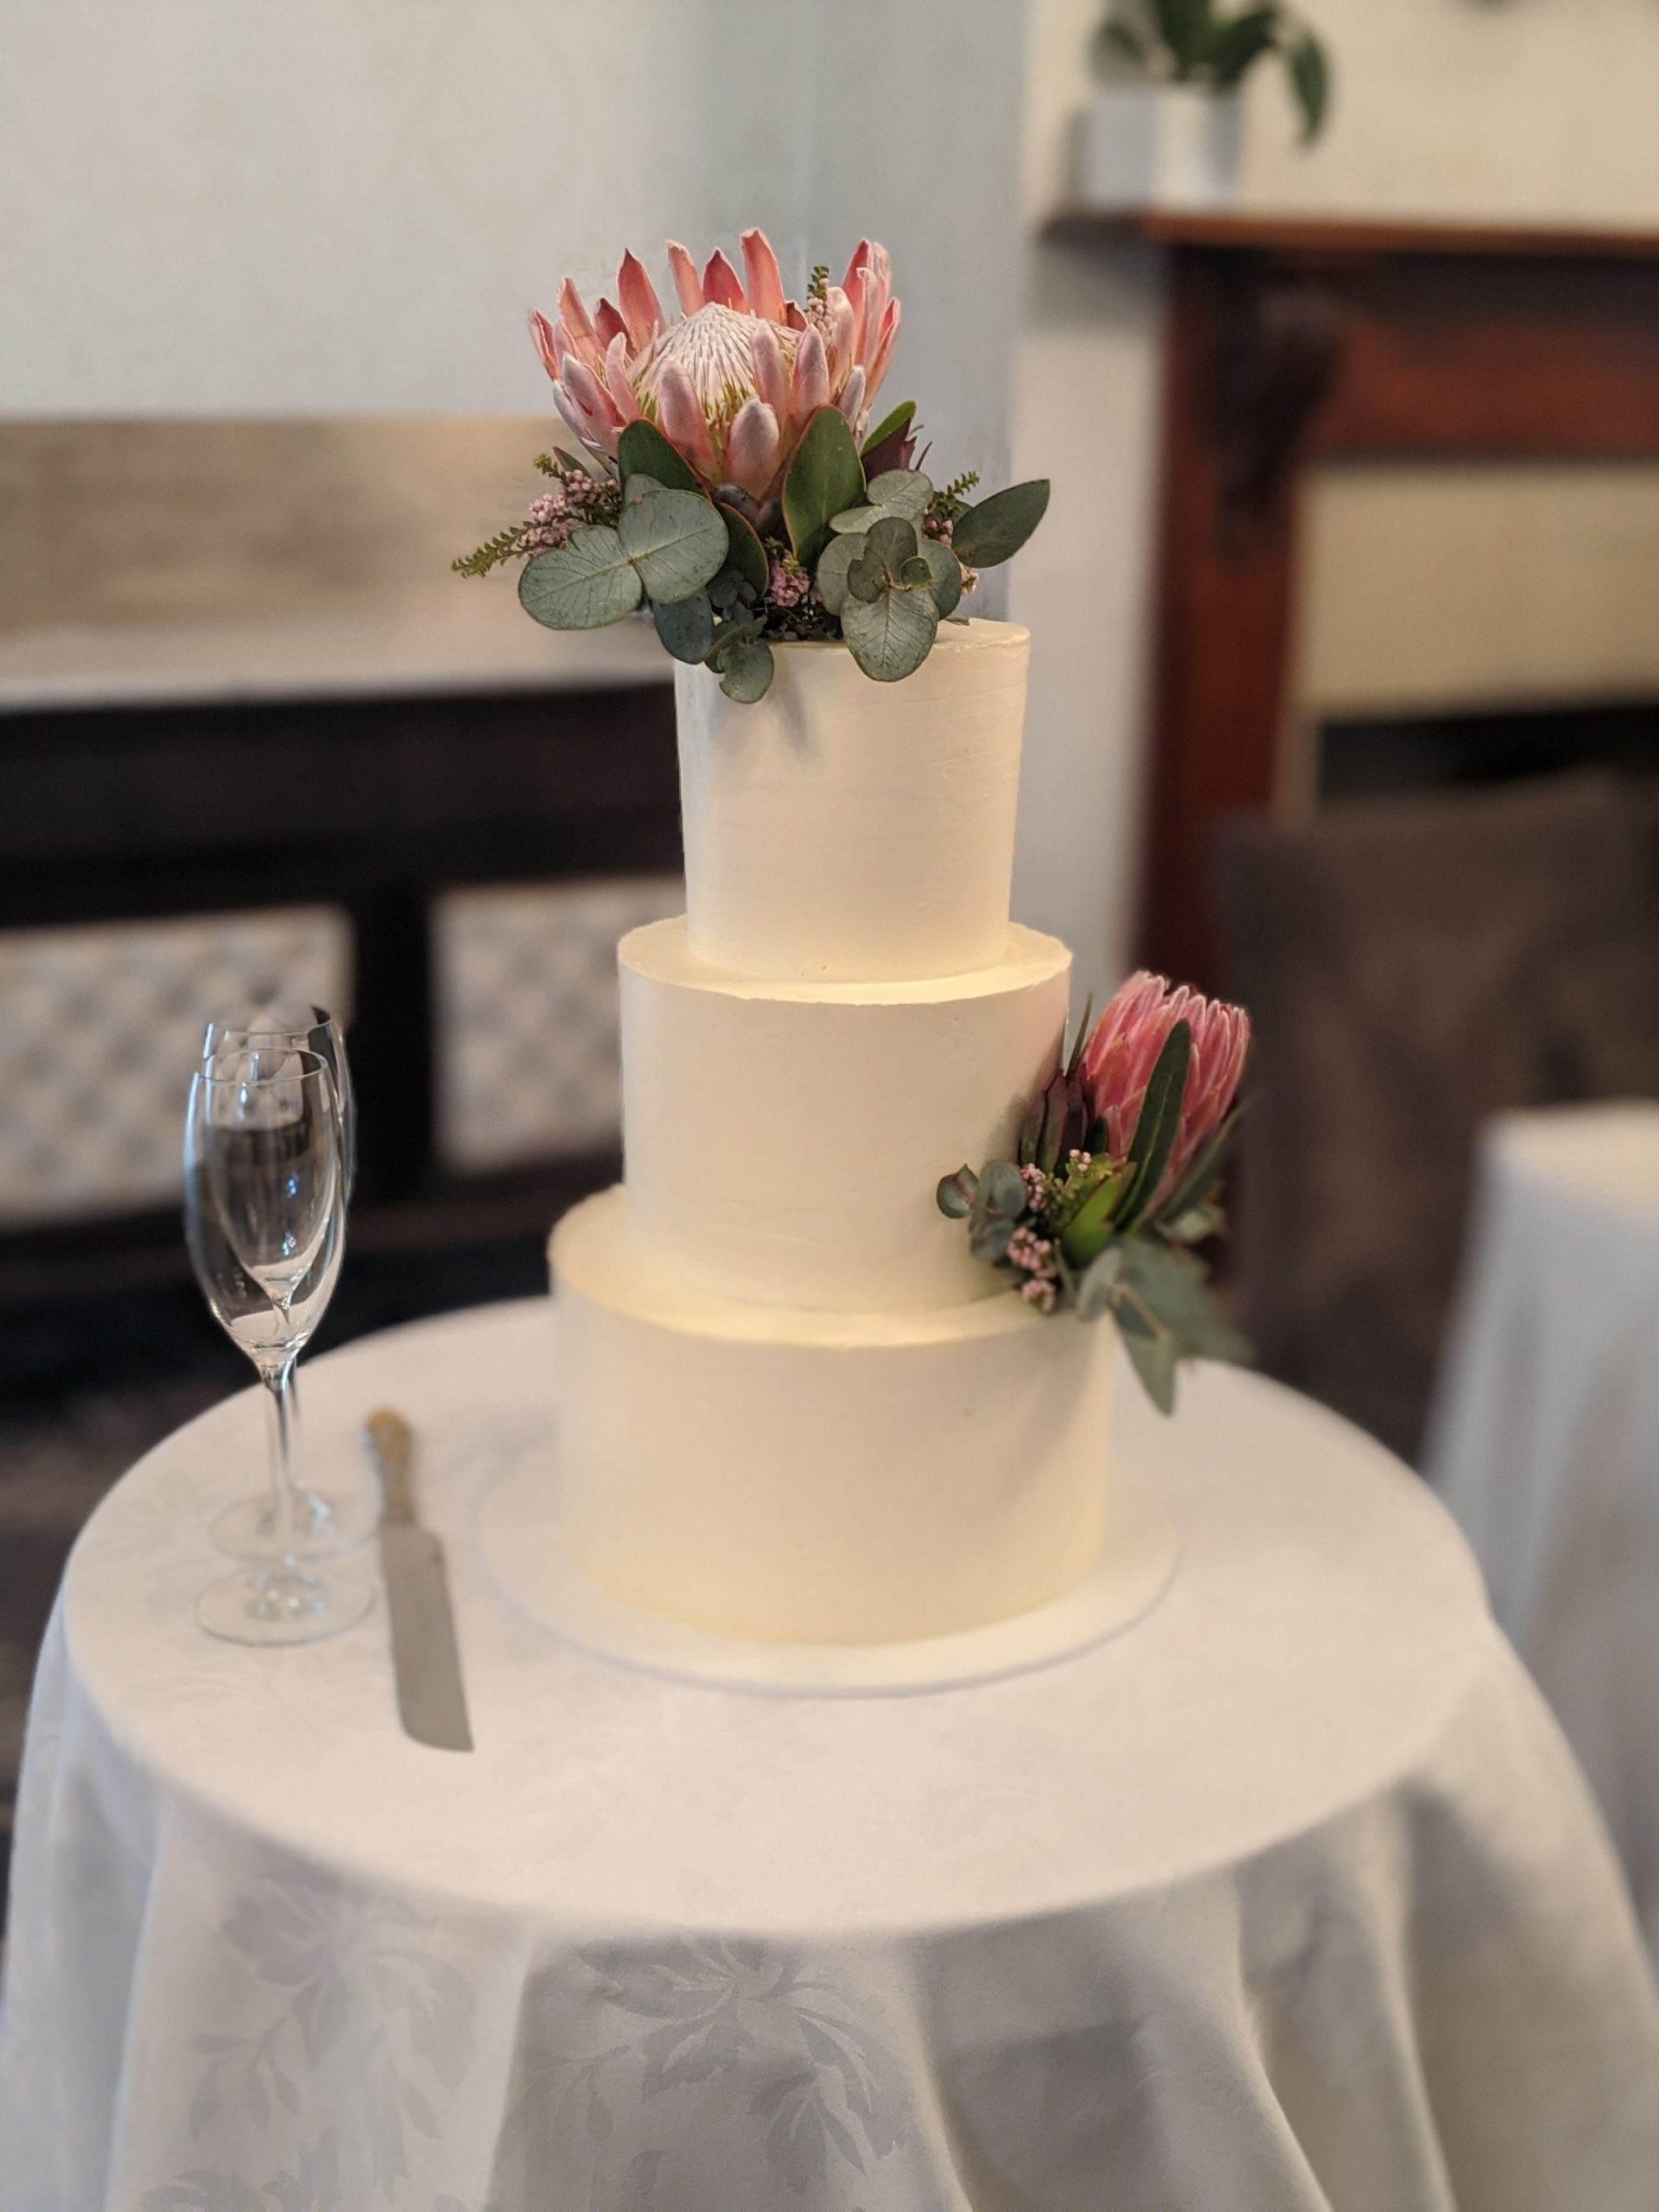 3 tiered buttercream wedding cake with native flowers